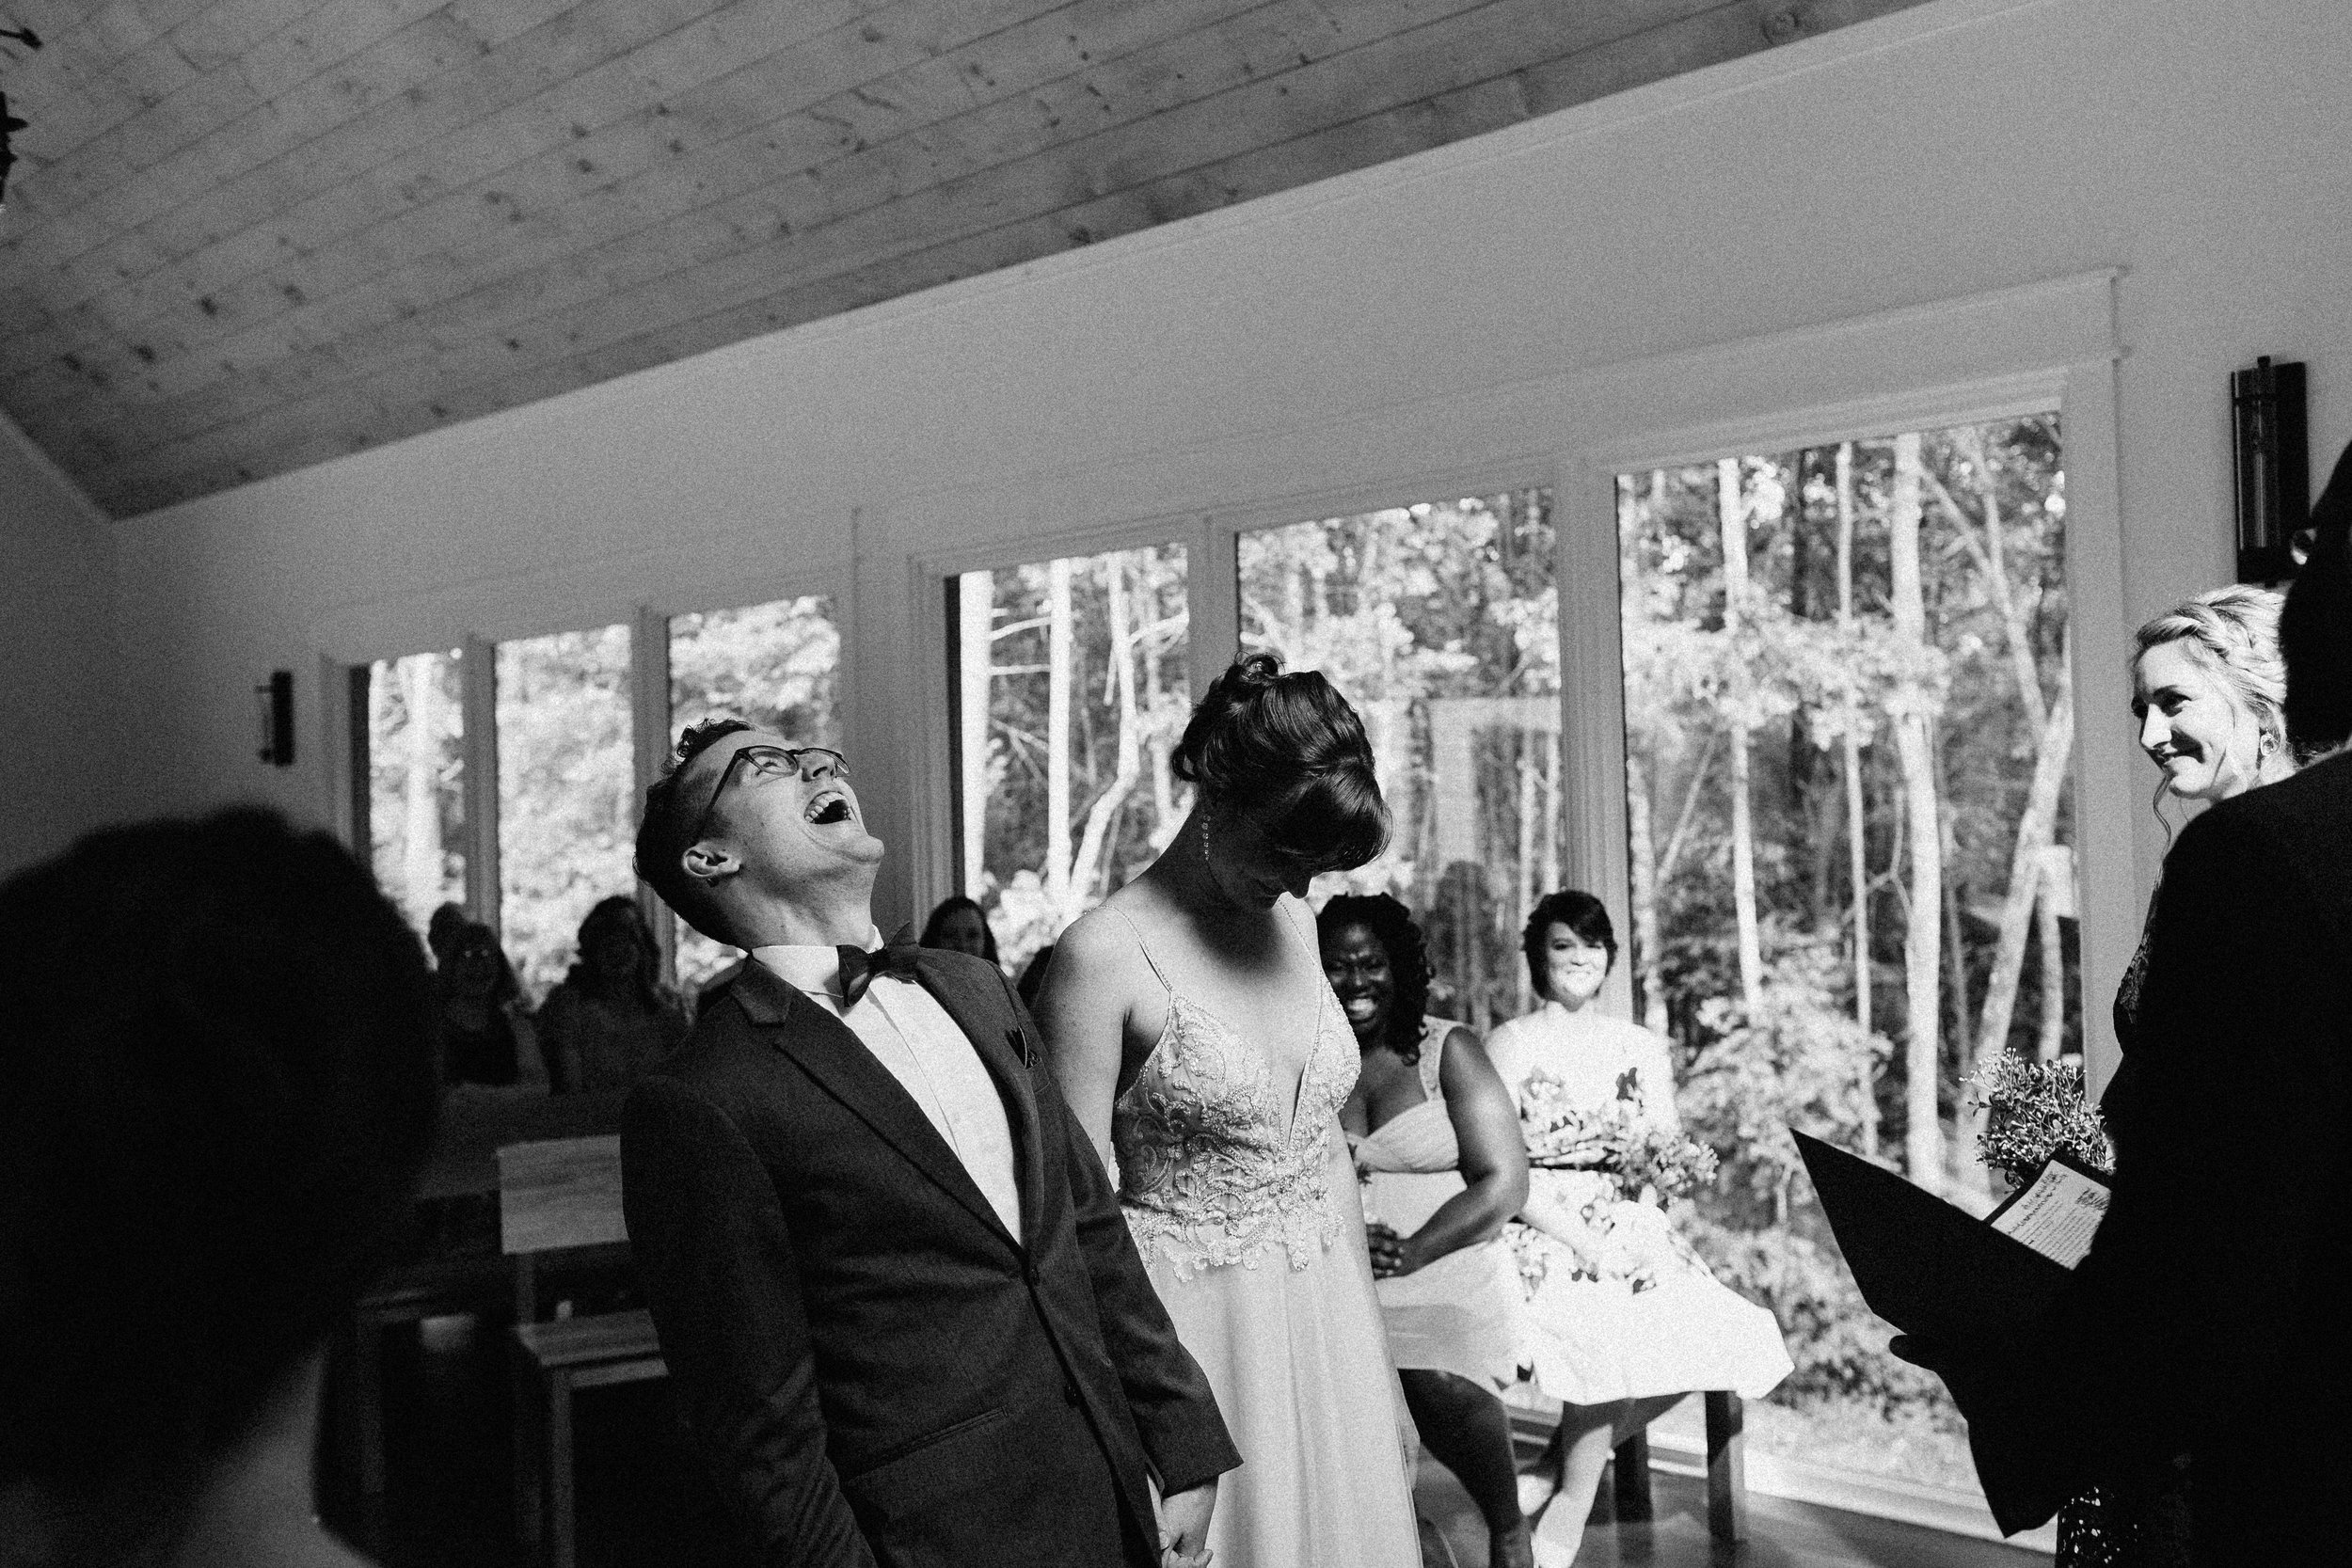 dahlonega_juliette_chapel_photojournalism_atlanta_wedding_photographers_1735.jpg